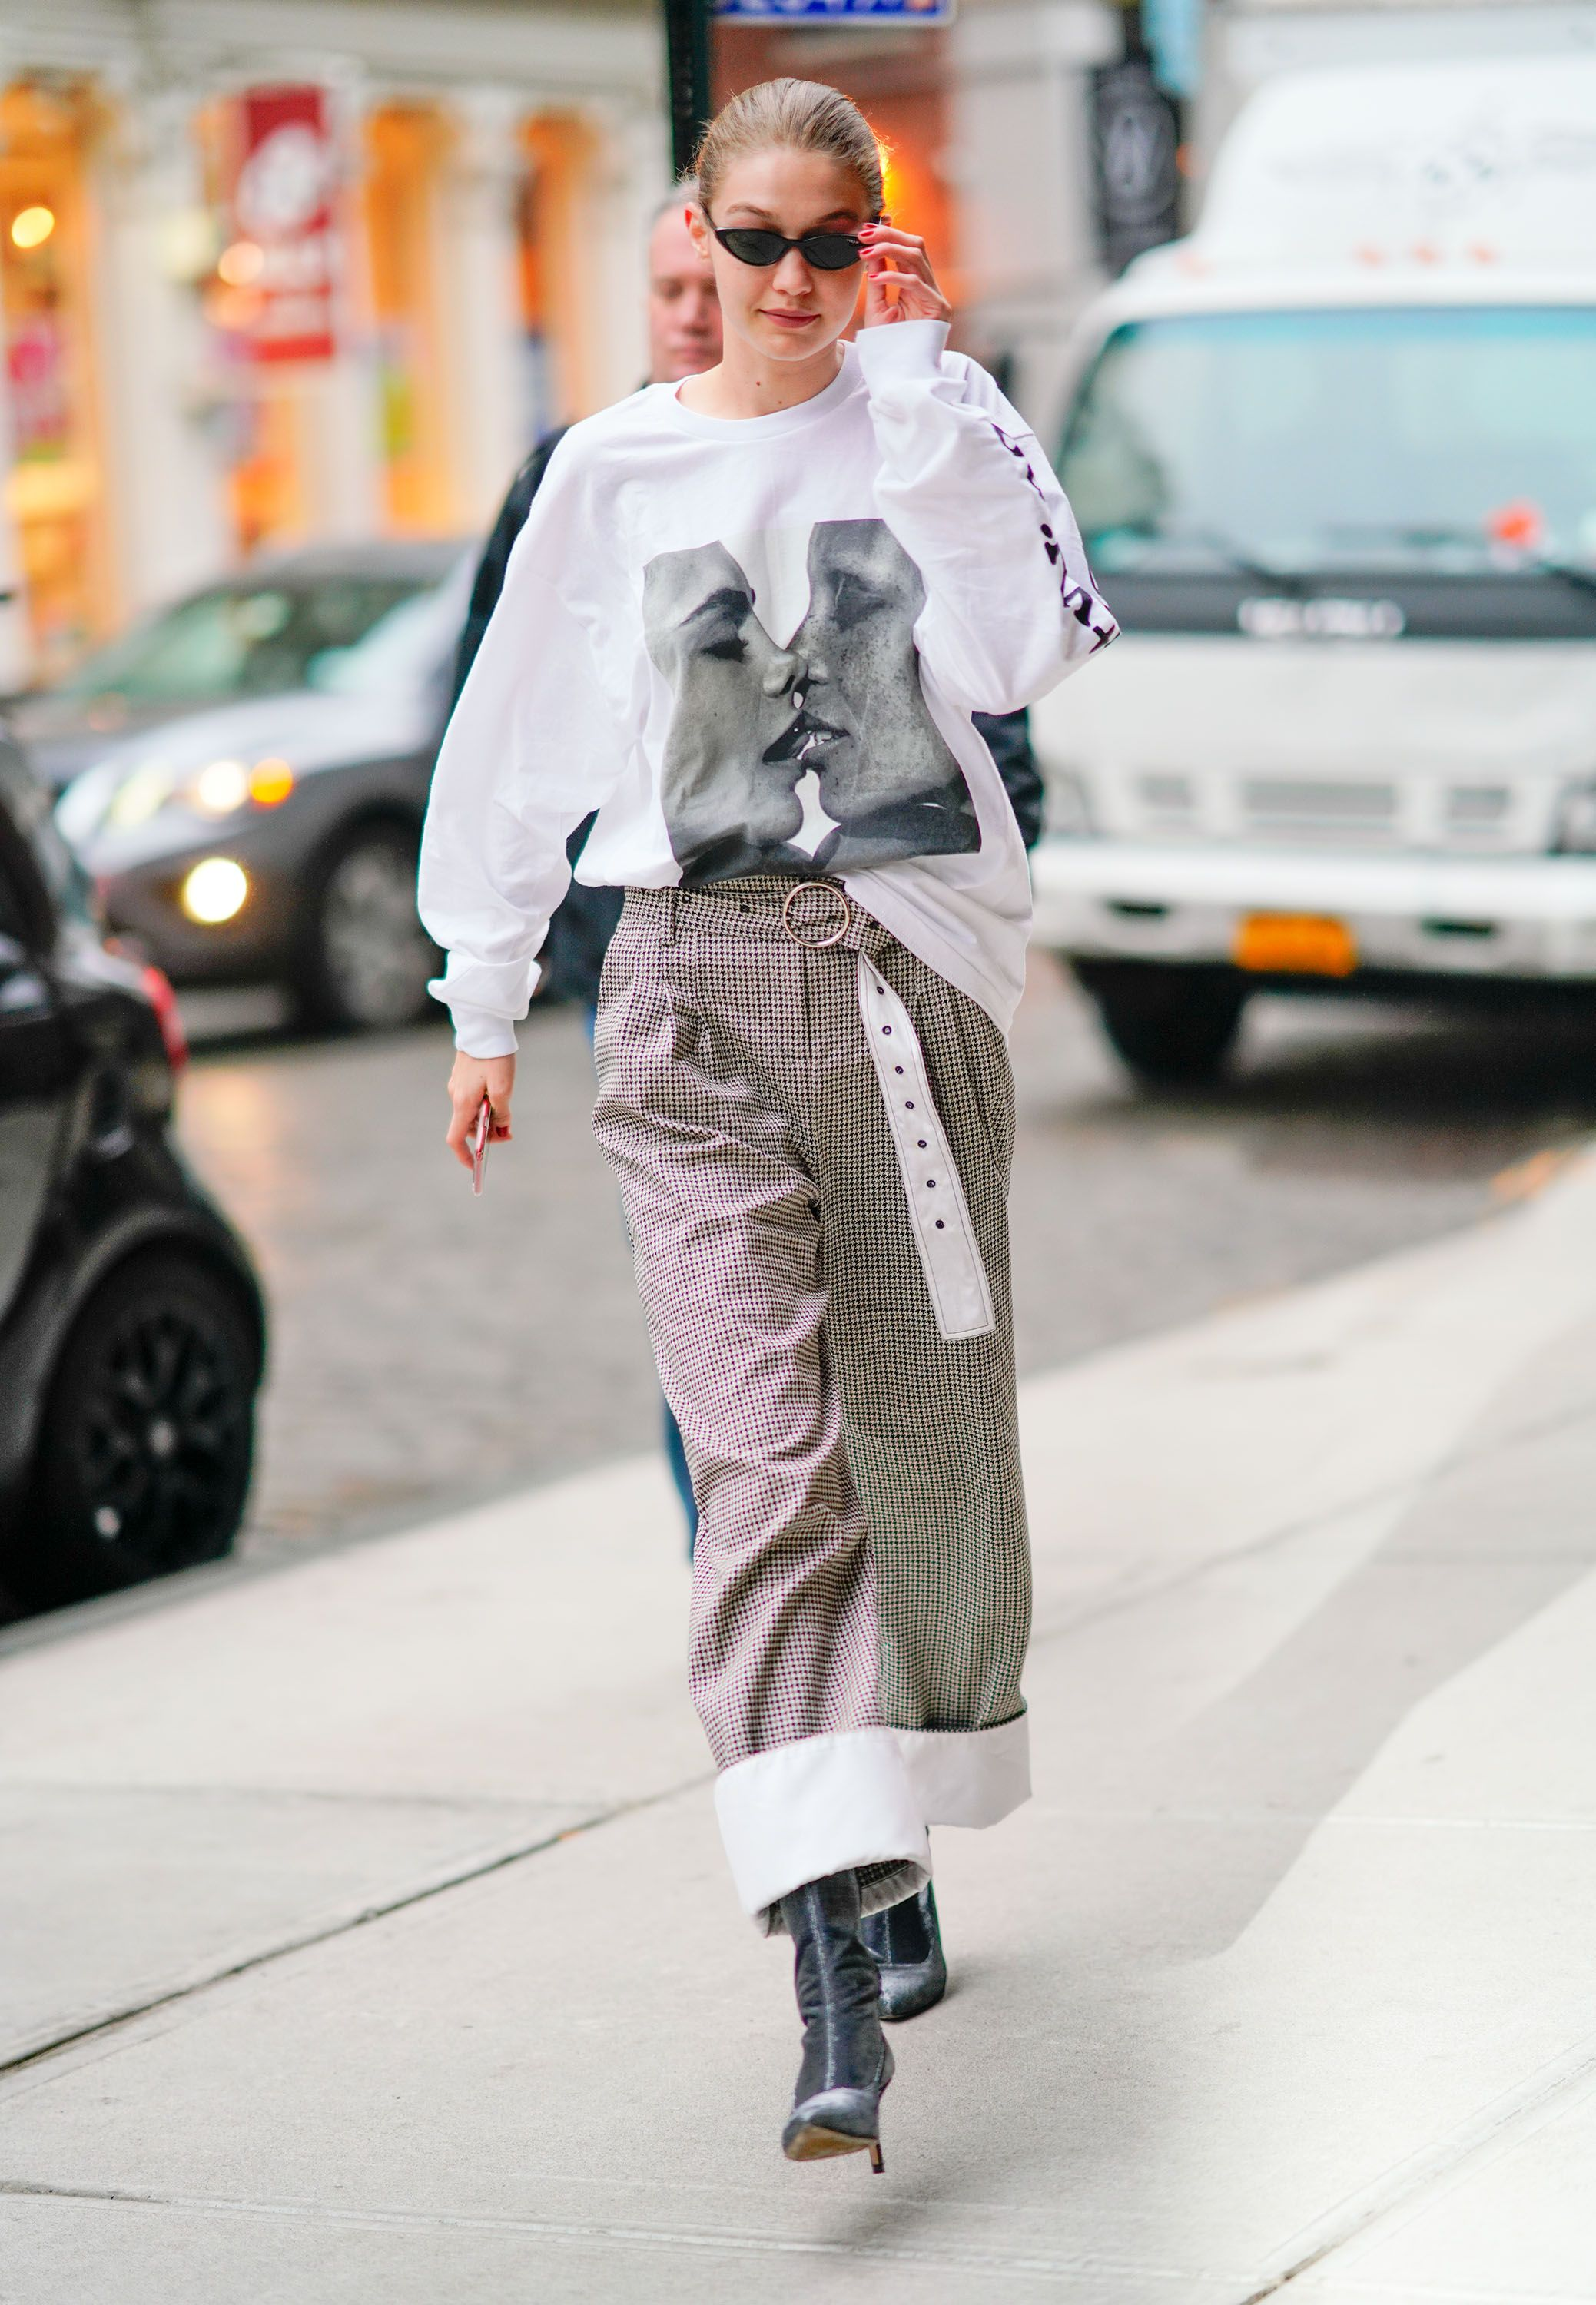 March 29, 2018 Your eyes will zoom right on to Hadid's Chaos SixtyNine shirt , which features Cara Delevingne and Adwoa Aboah going in for a kiss. She tucked the oversize top into high-waisted checkered (dare we say Santa Clause–inspired) pants and wore a pair of Stuart Weitzman boots.